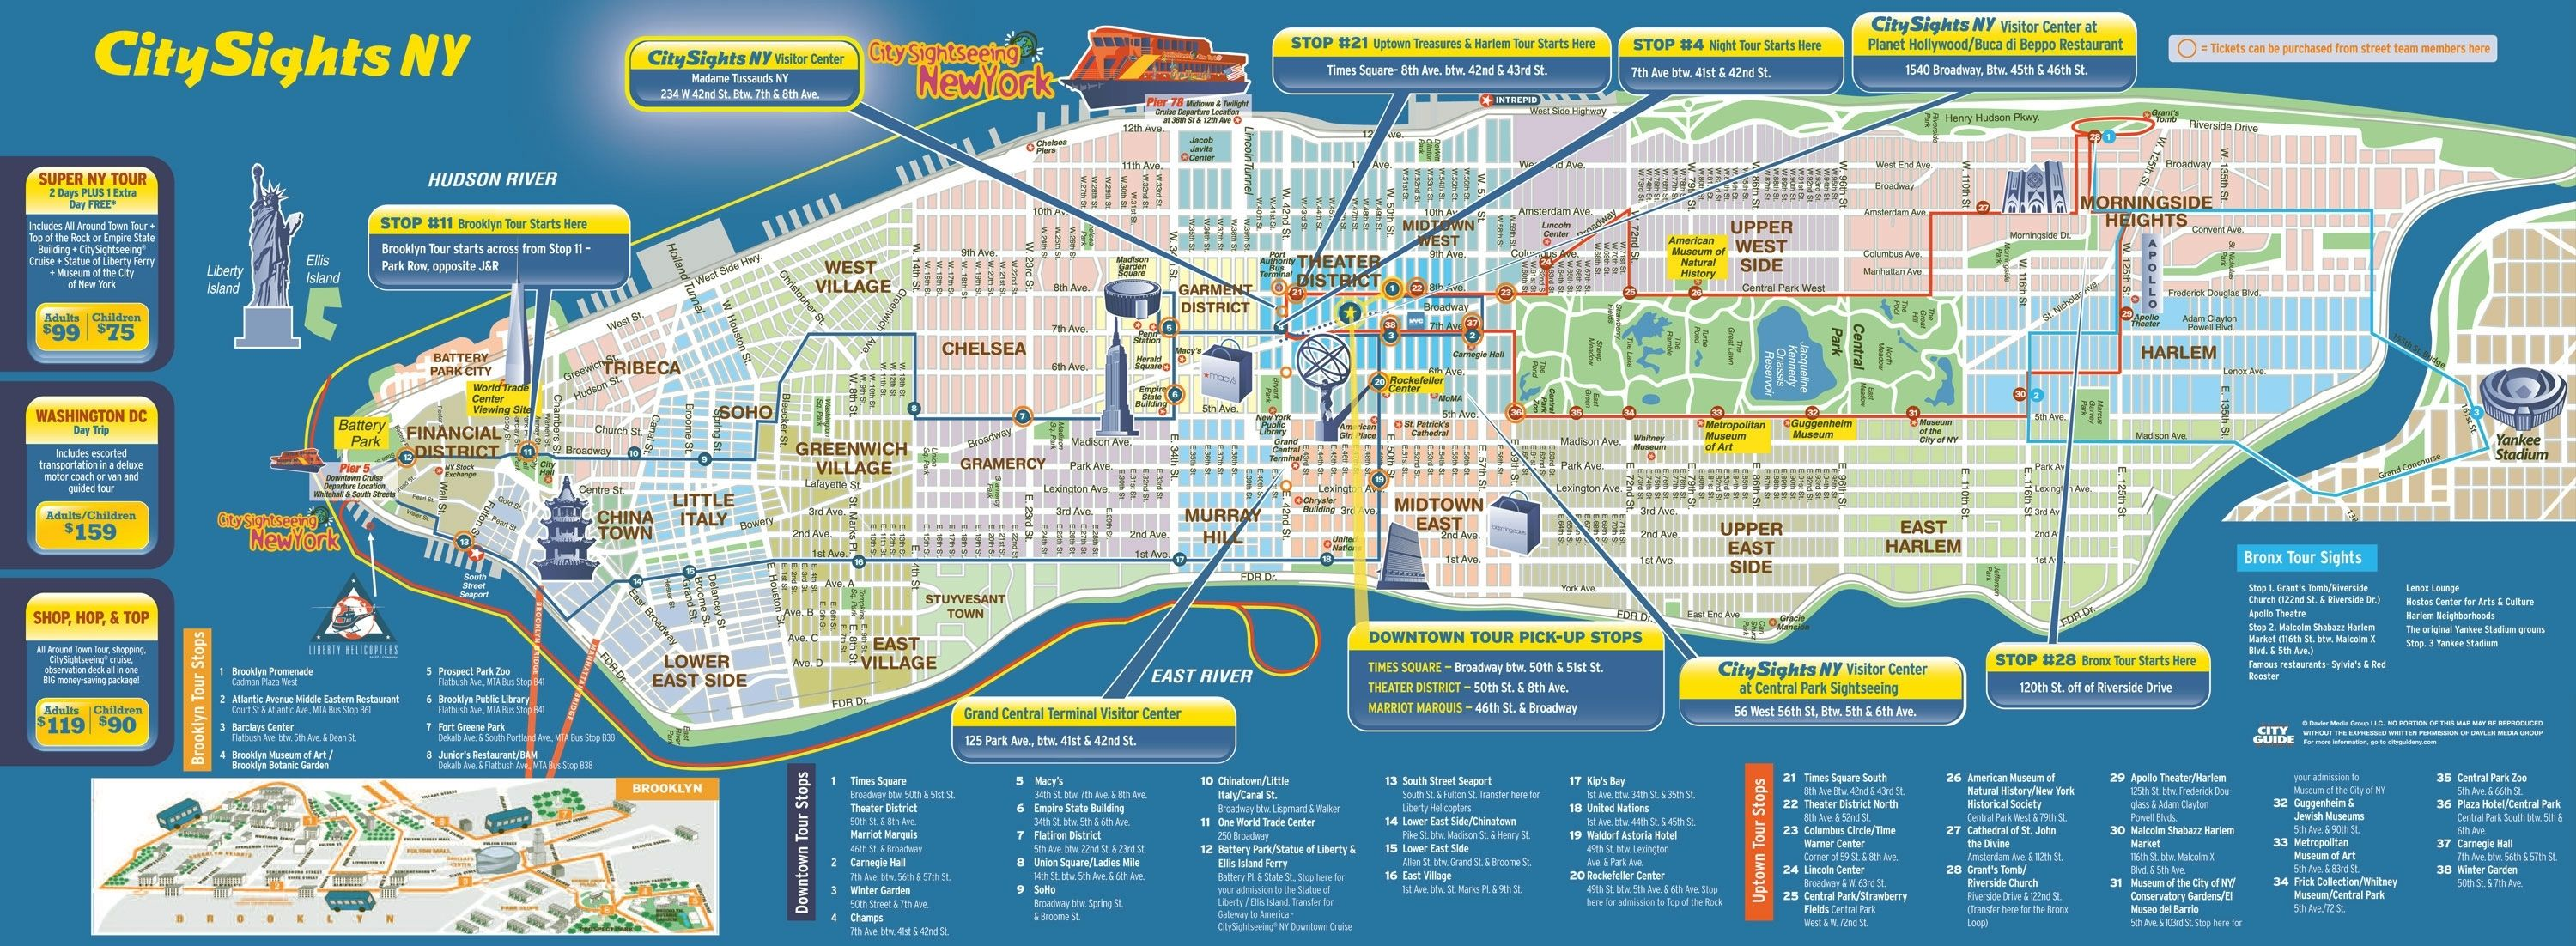 Manhattan Tourist Attractions Map Download Manhattan Map New ... on manhattan street map, manhattan sites map, city map, manhattan points of interest map, manhattan sightseeing, streetwise manhattan map, manhattan map printable, simple manhattan map, nyc map, manhattan walking map, midtown manhattan map, manhattan subway map, manhattan train map, central park map, manhattan kansas map, manhattan business map, manhattan map with attractions, manhattan bus map, manhattan art map, manhattan new york,